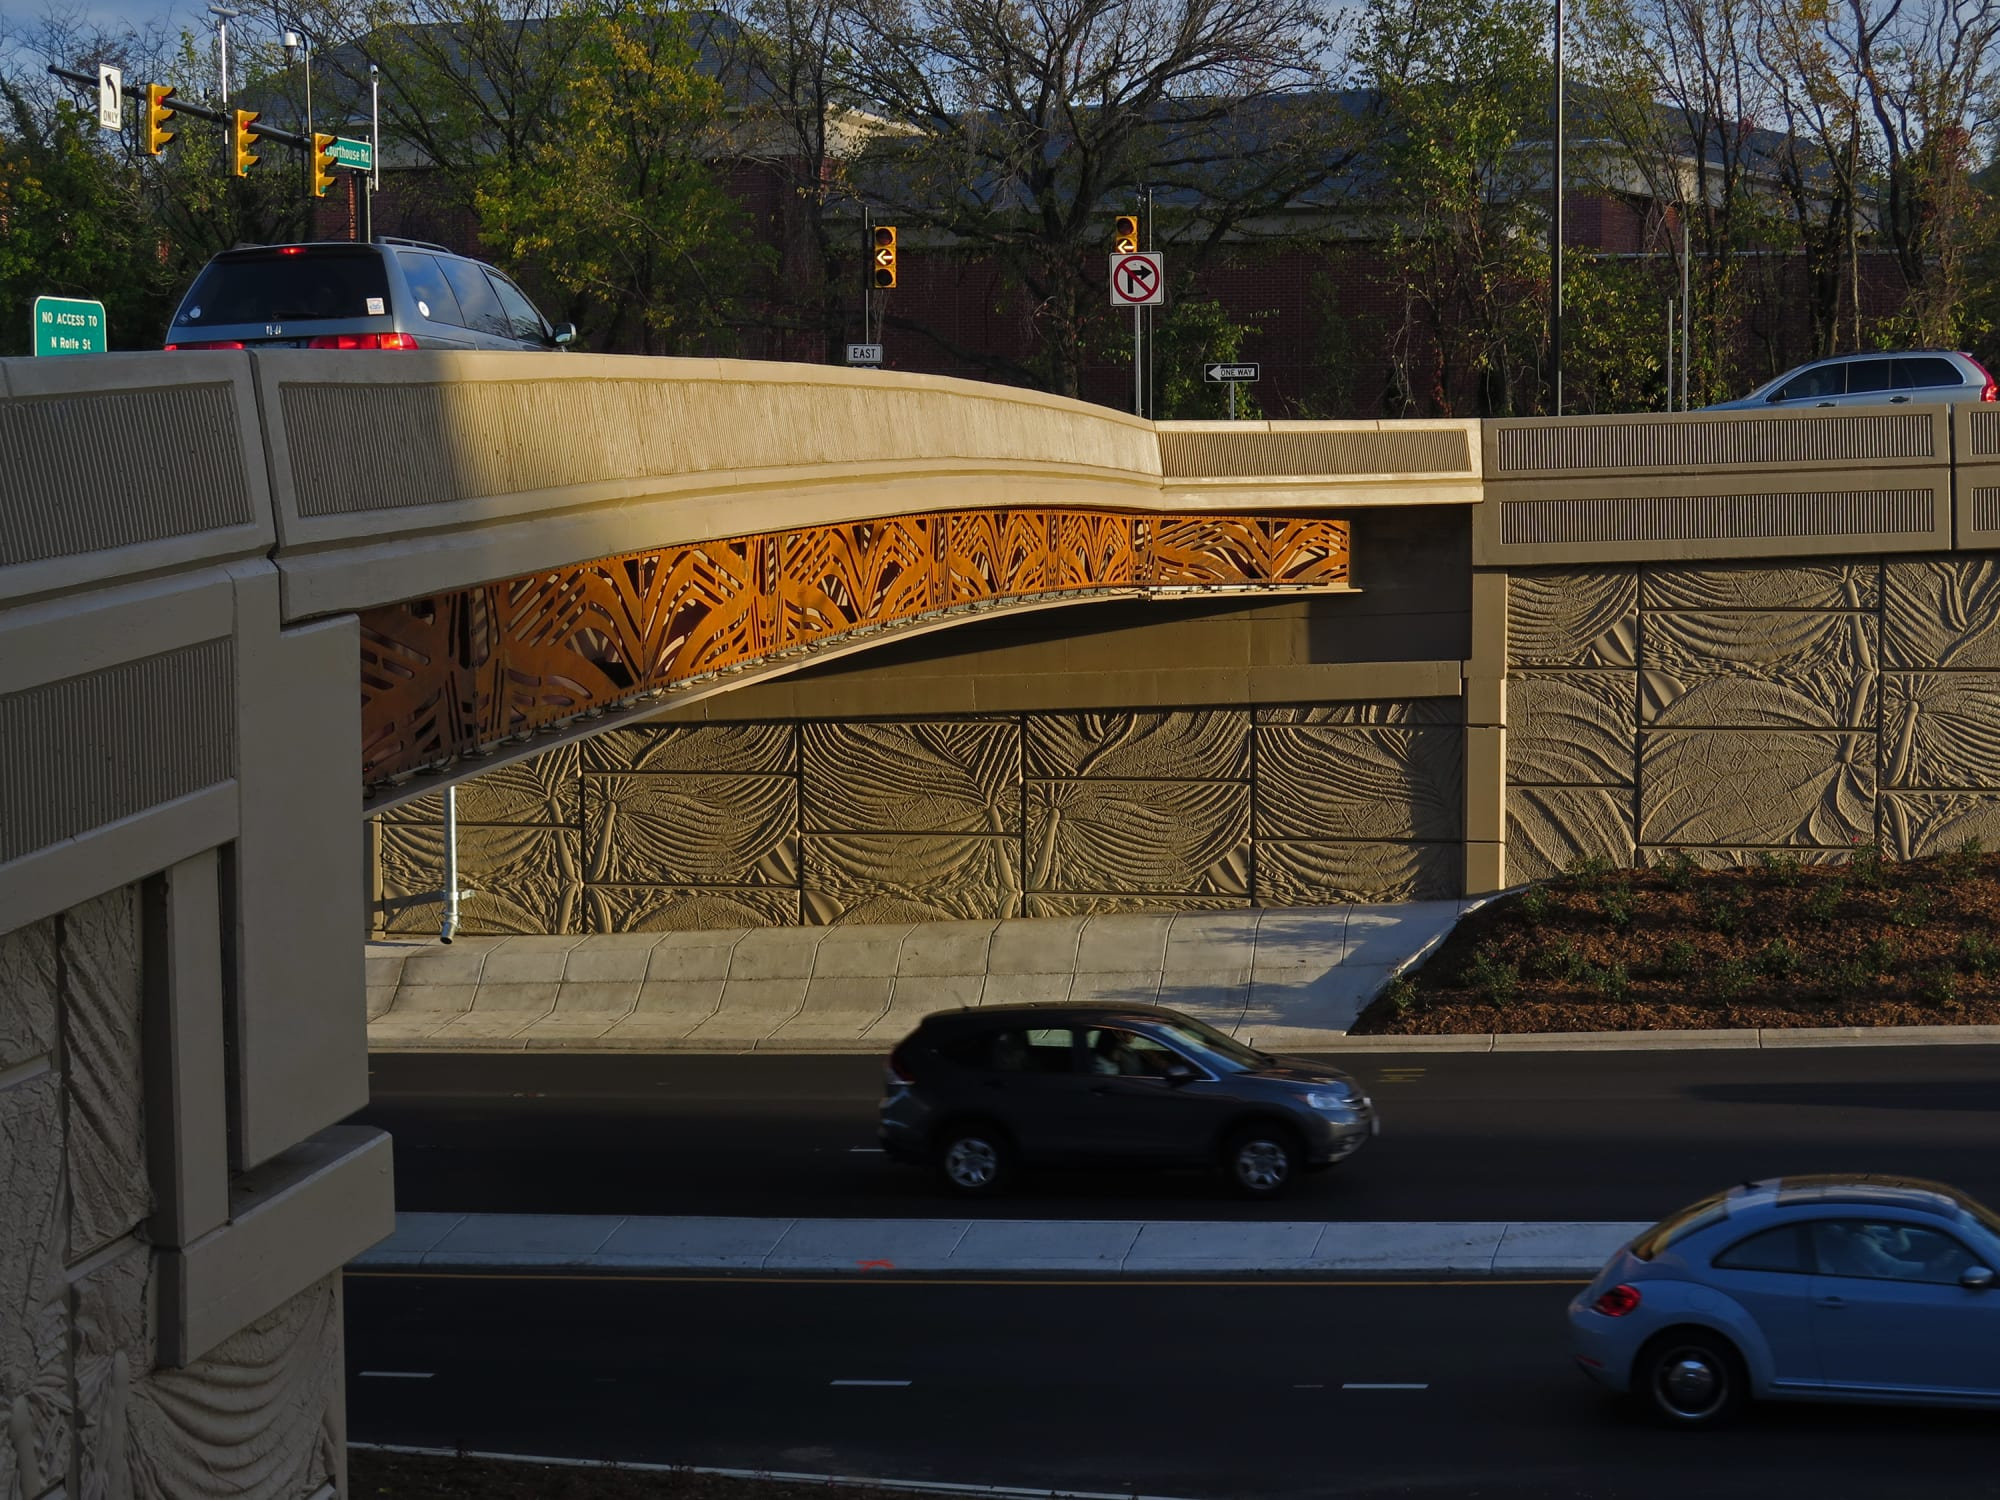 Public Sculptures by Vicki Scuri SiteWorks seen at Arlington Boulevard at Courthouse Road and 10th Street, Arlington, VA, Arlington - Arlington Boulevard Bridges